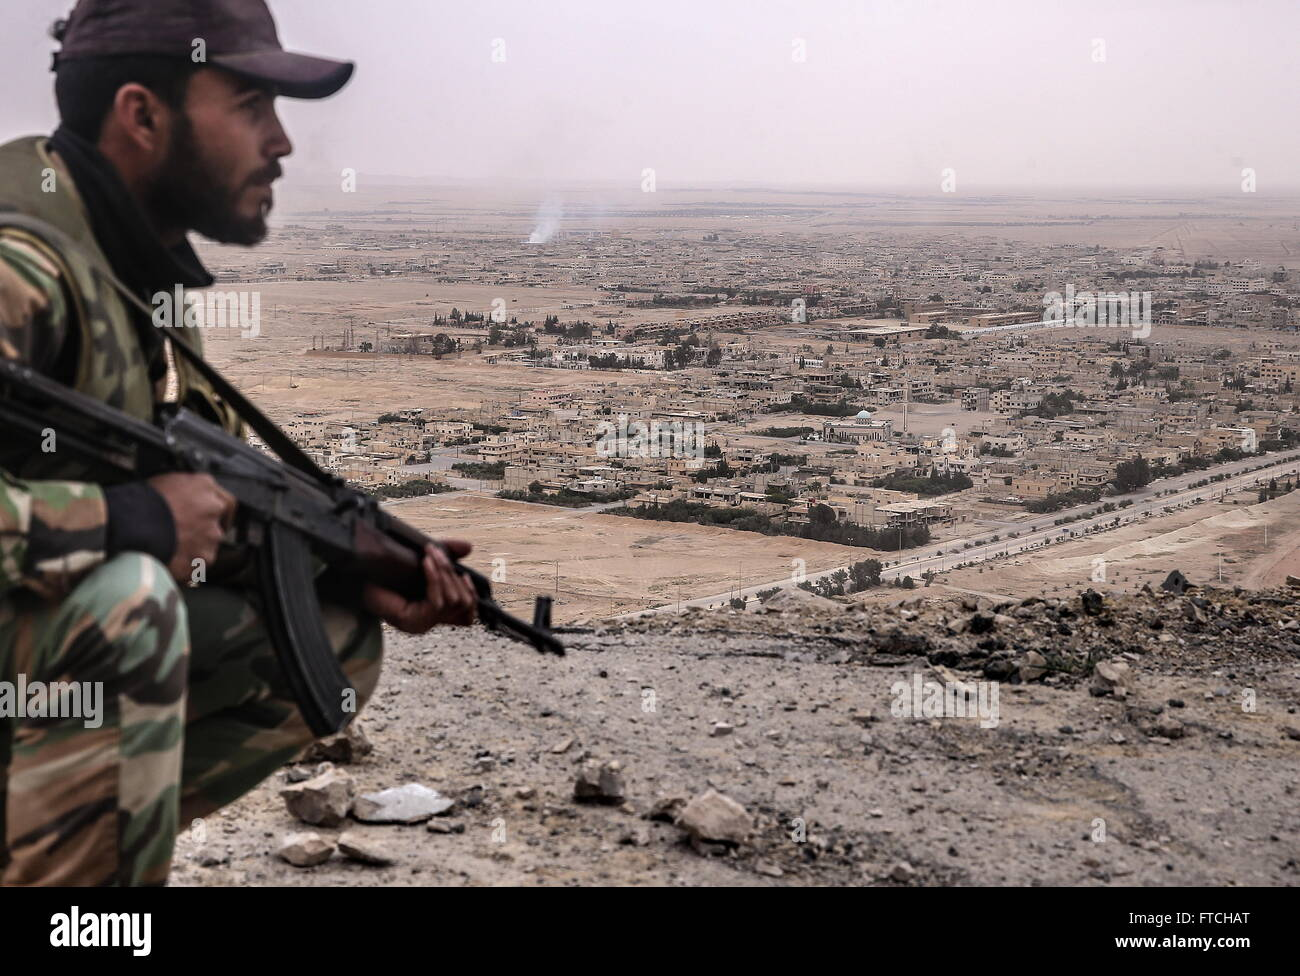 Palmyria, Syria. 26th Mar, 2016. A Syrian government army soldier looks at Palmyra from Fakhr al-Din al-Maani Citadel, - Stock Image